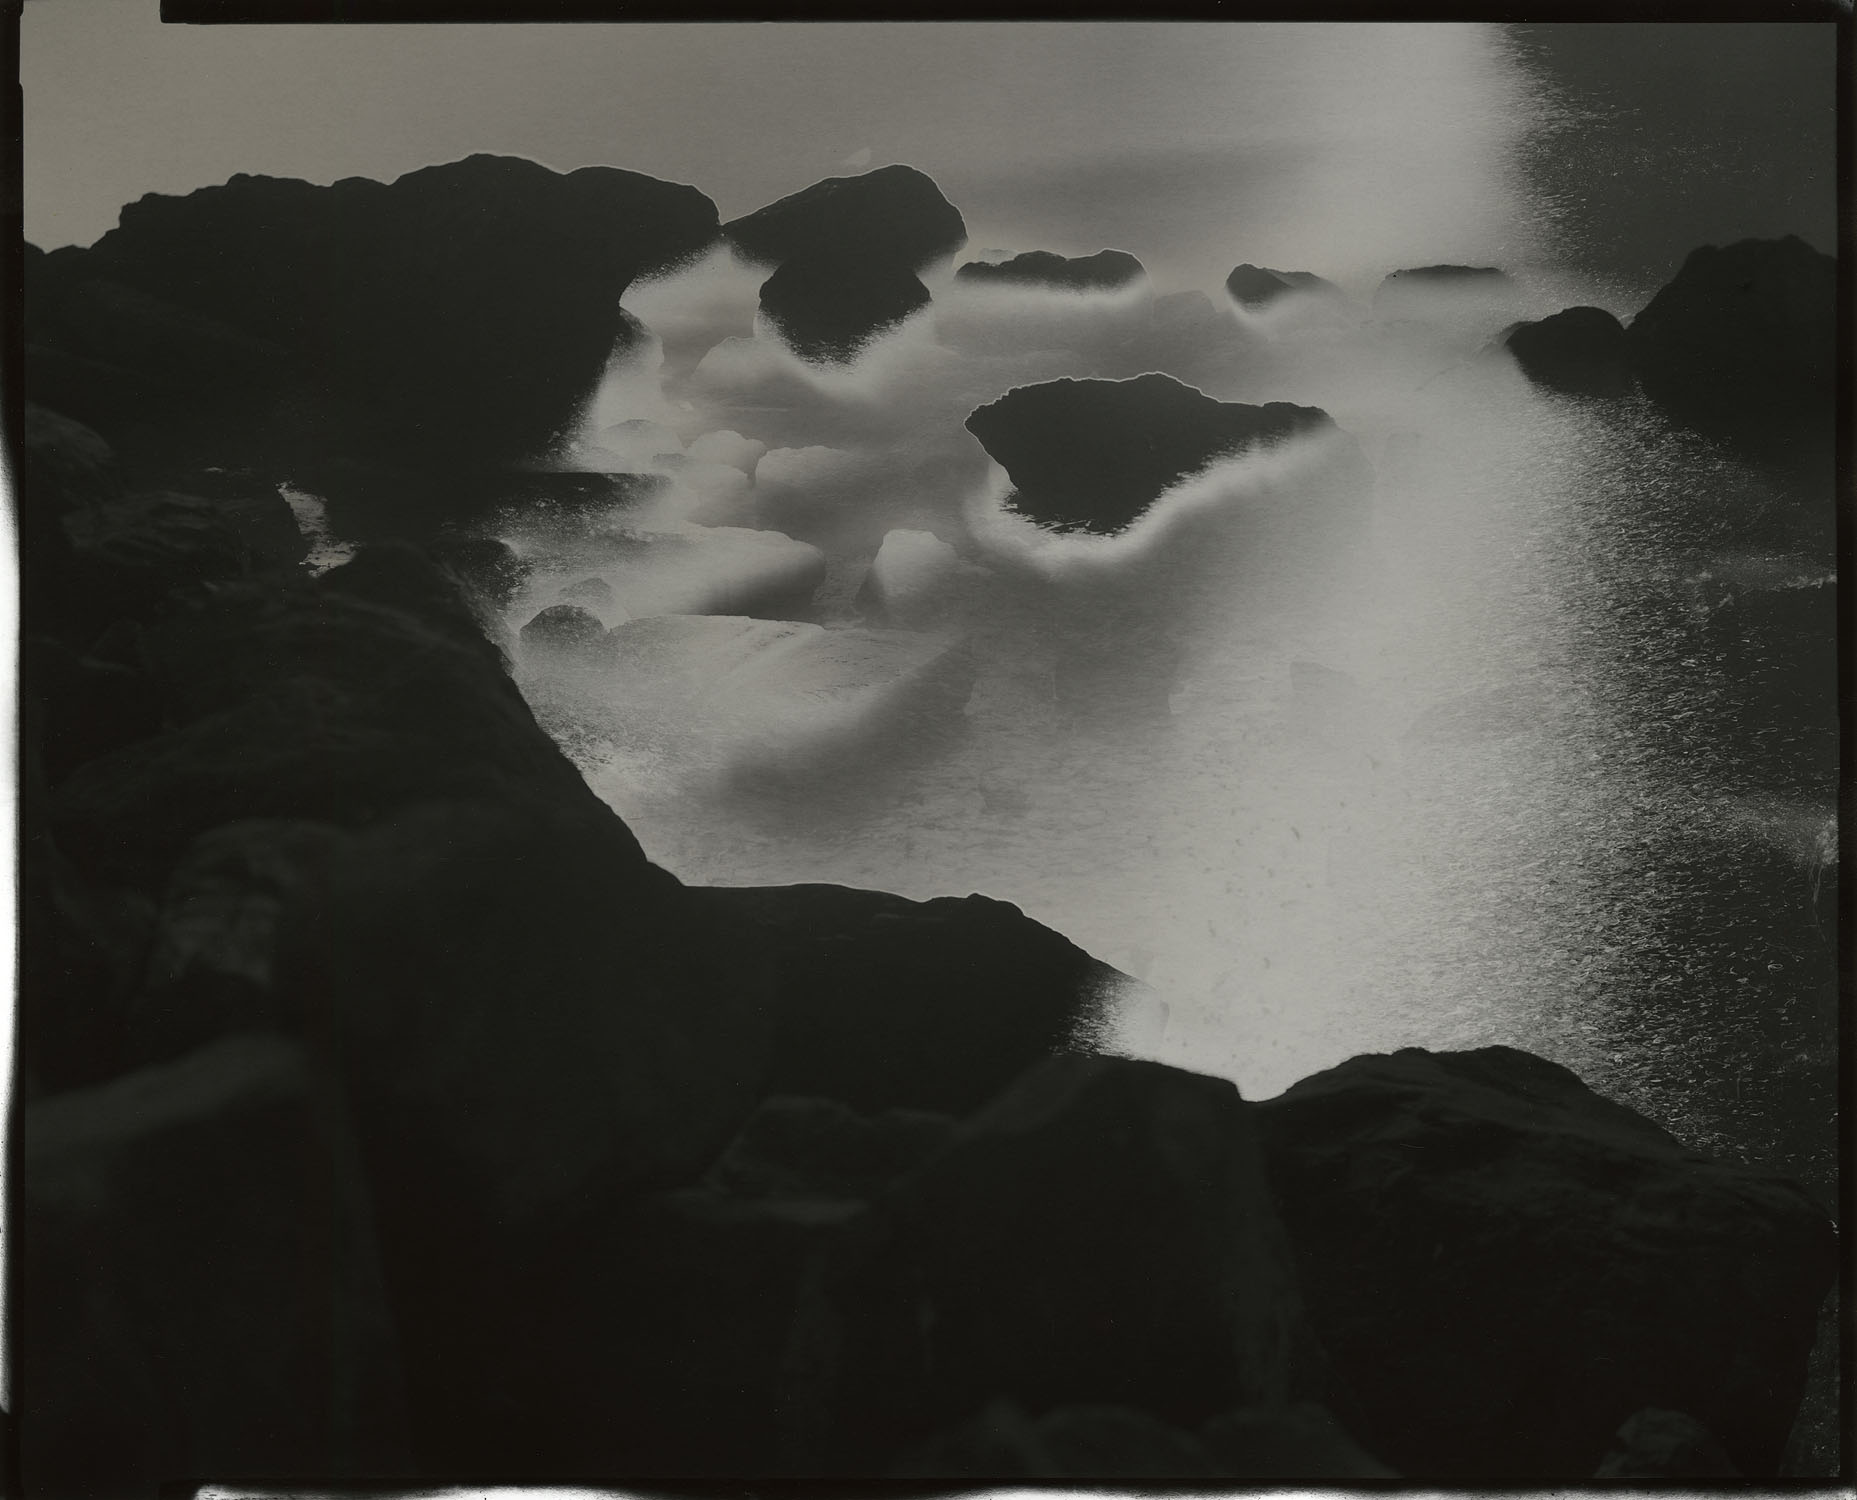 """Tidal #4, 2013. 8""""x10"""" unique gelatin silver paper negative. Courtesy of Haines Gallery, San Francisco"""